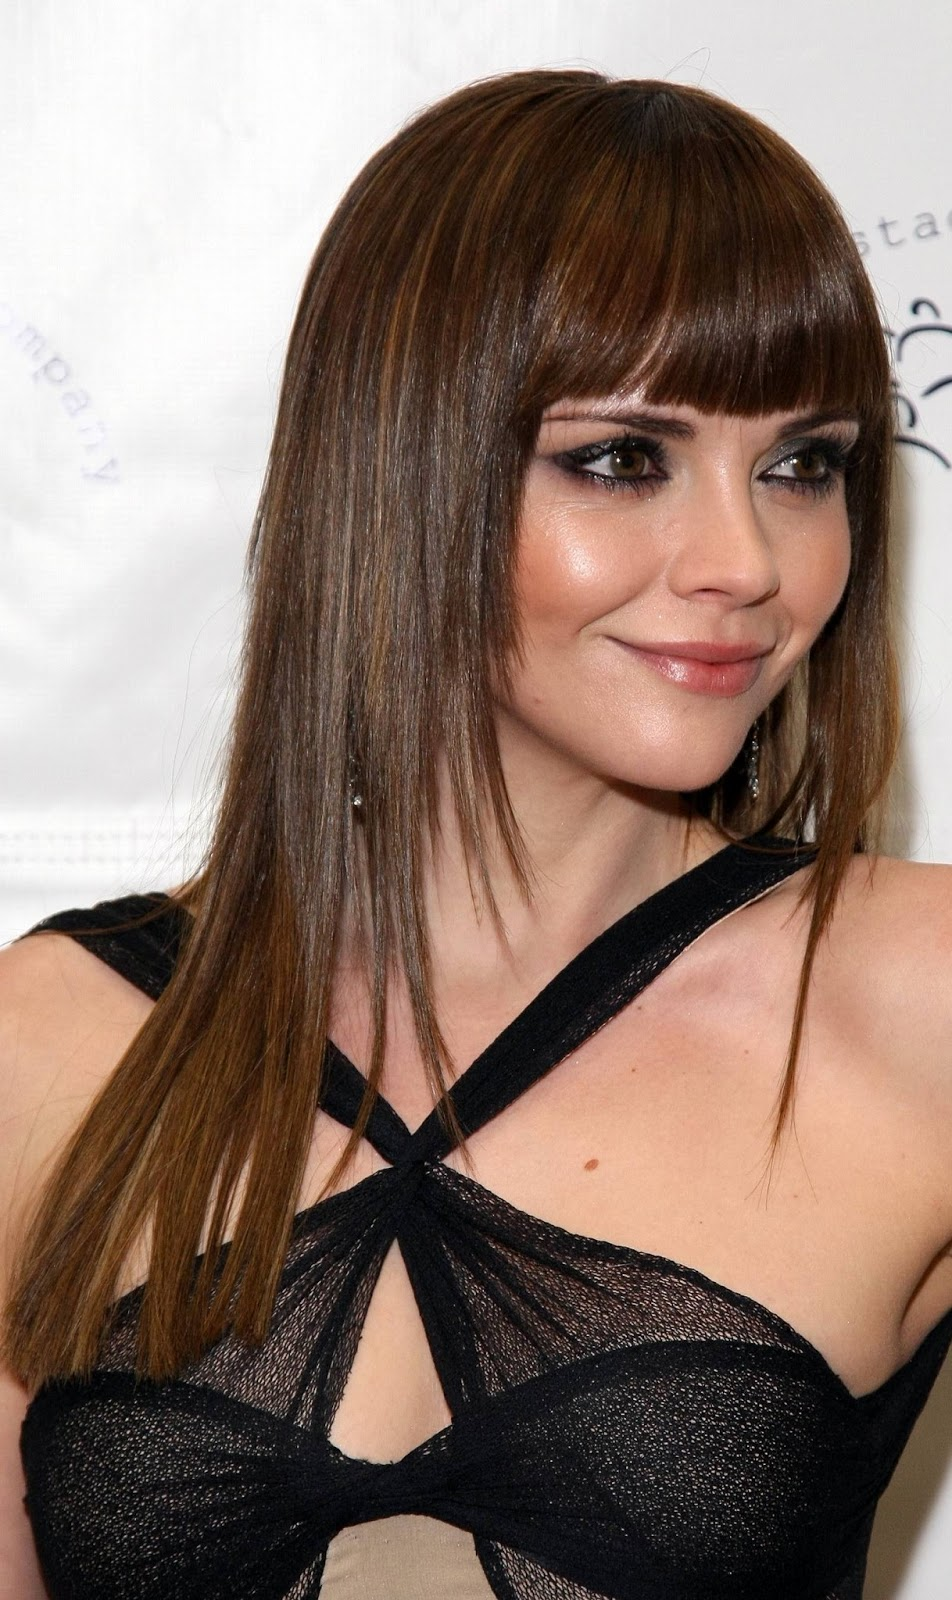 Fringe Hairstyles 2013 Chic And Flirty Hairstyles Hairstyles 2013